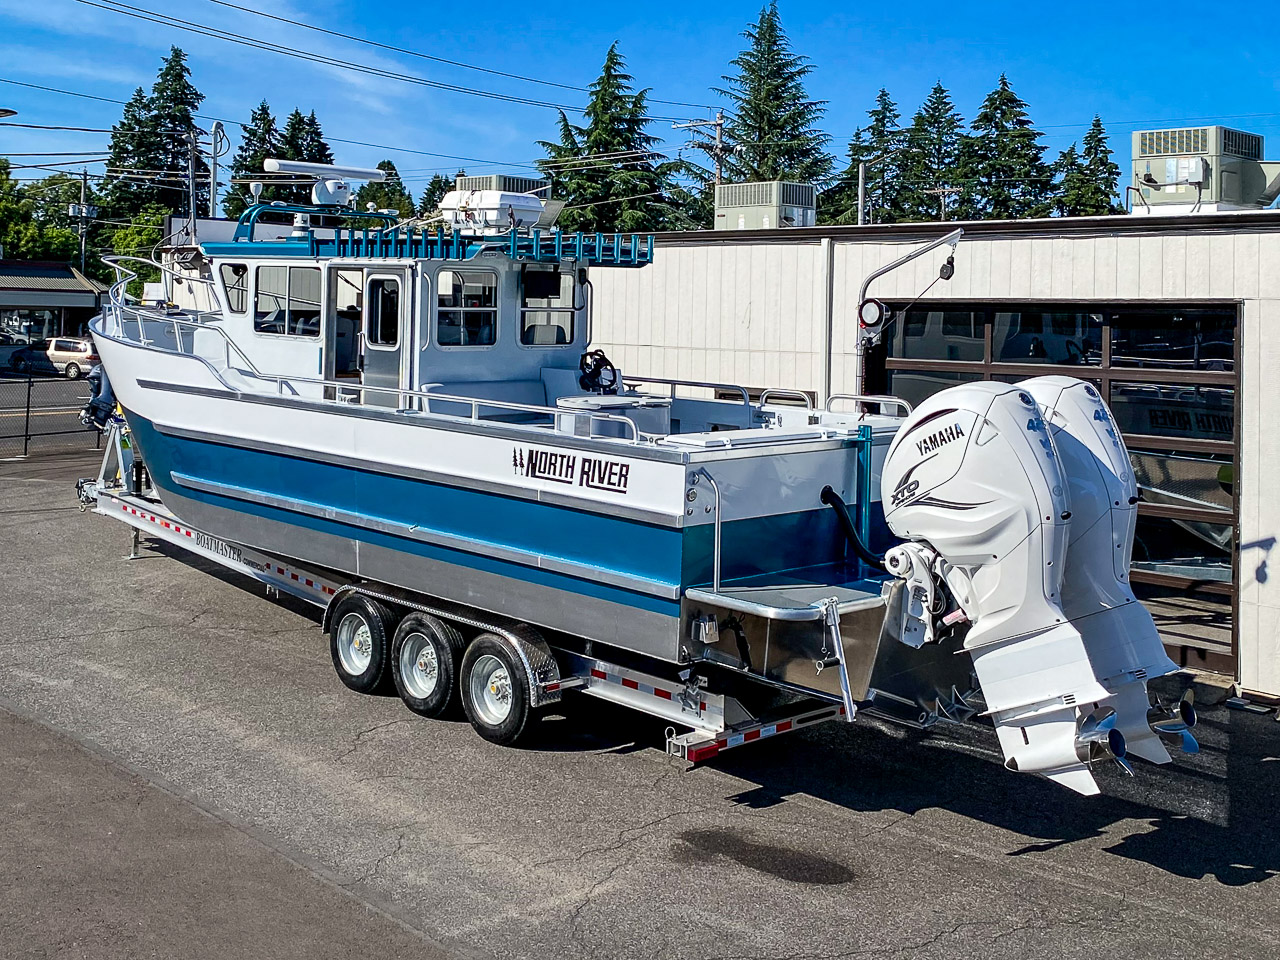 2023 NORTH RIVER 33 Offshore WA - SPECIAL ORDER